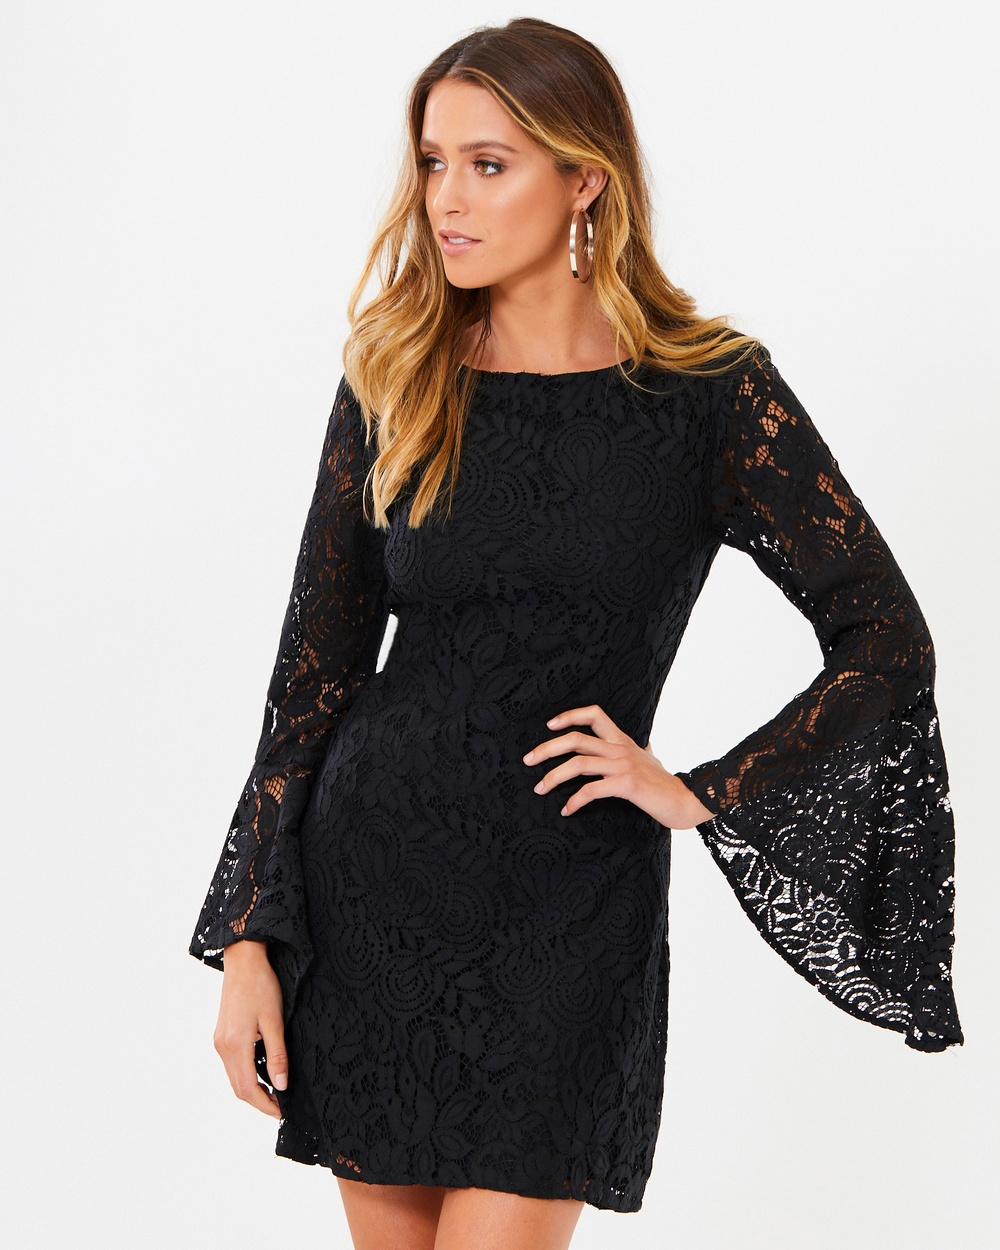 Tussah Tilda Lace Mini Dress Dresses Black Lace Tilda Lace Mini Dress